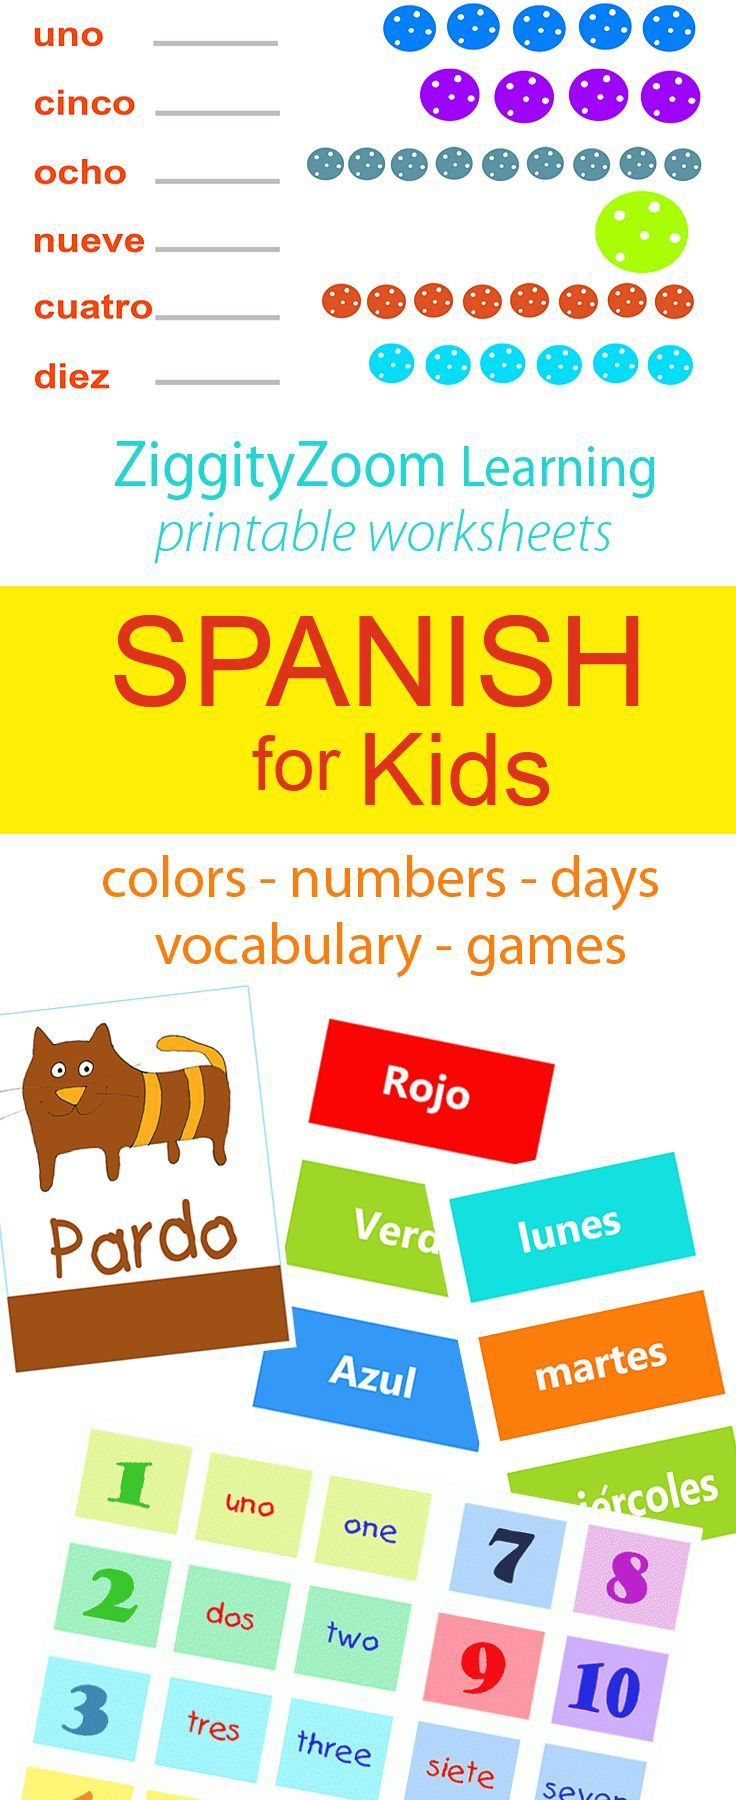 Free Printable Spanish worksheets for kids. Lots of